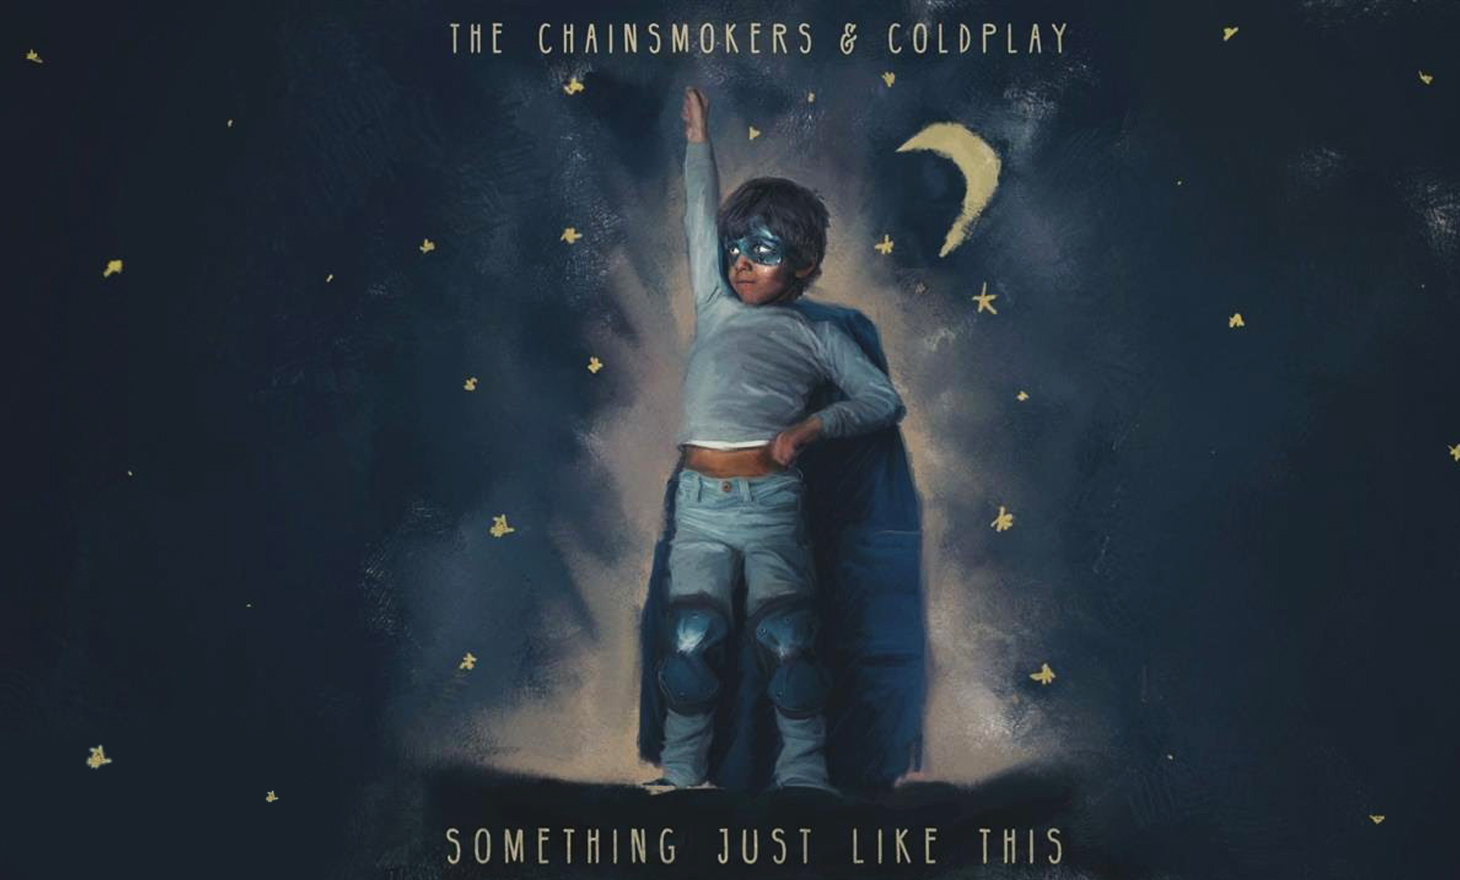 The Chainsmokers and Coldplay : Something Just Like This